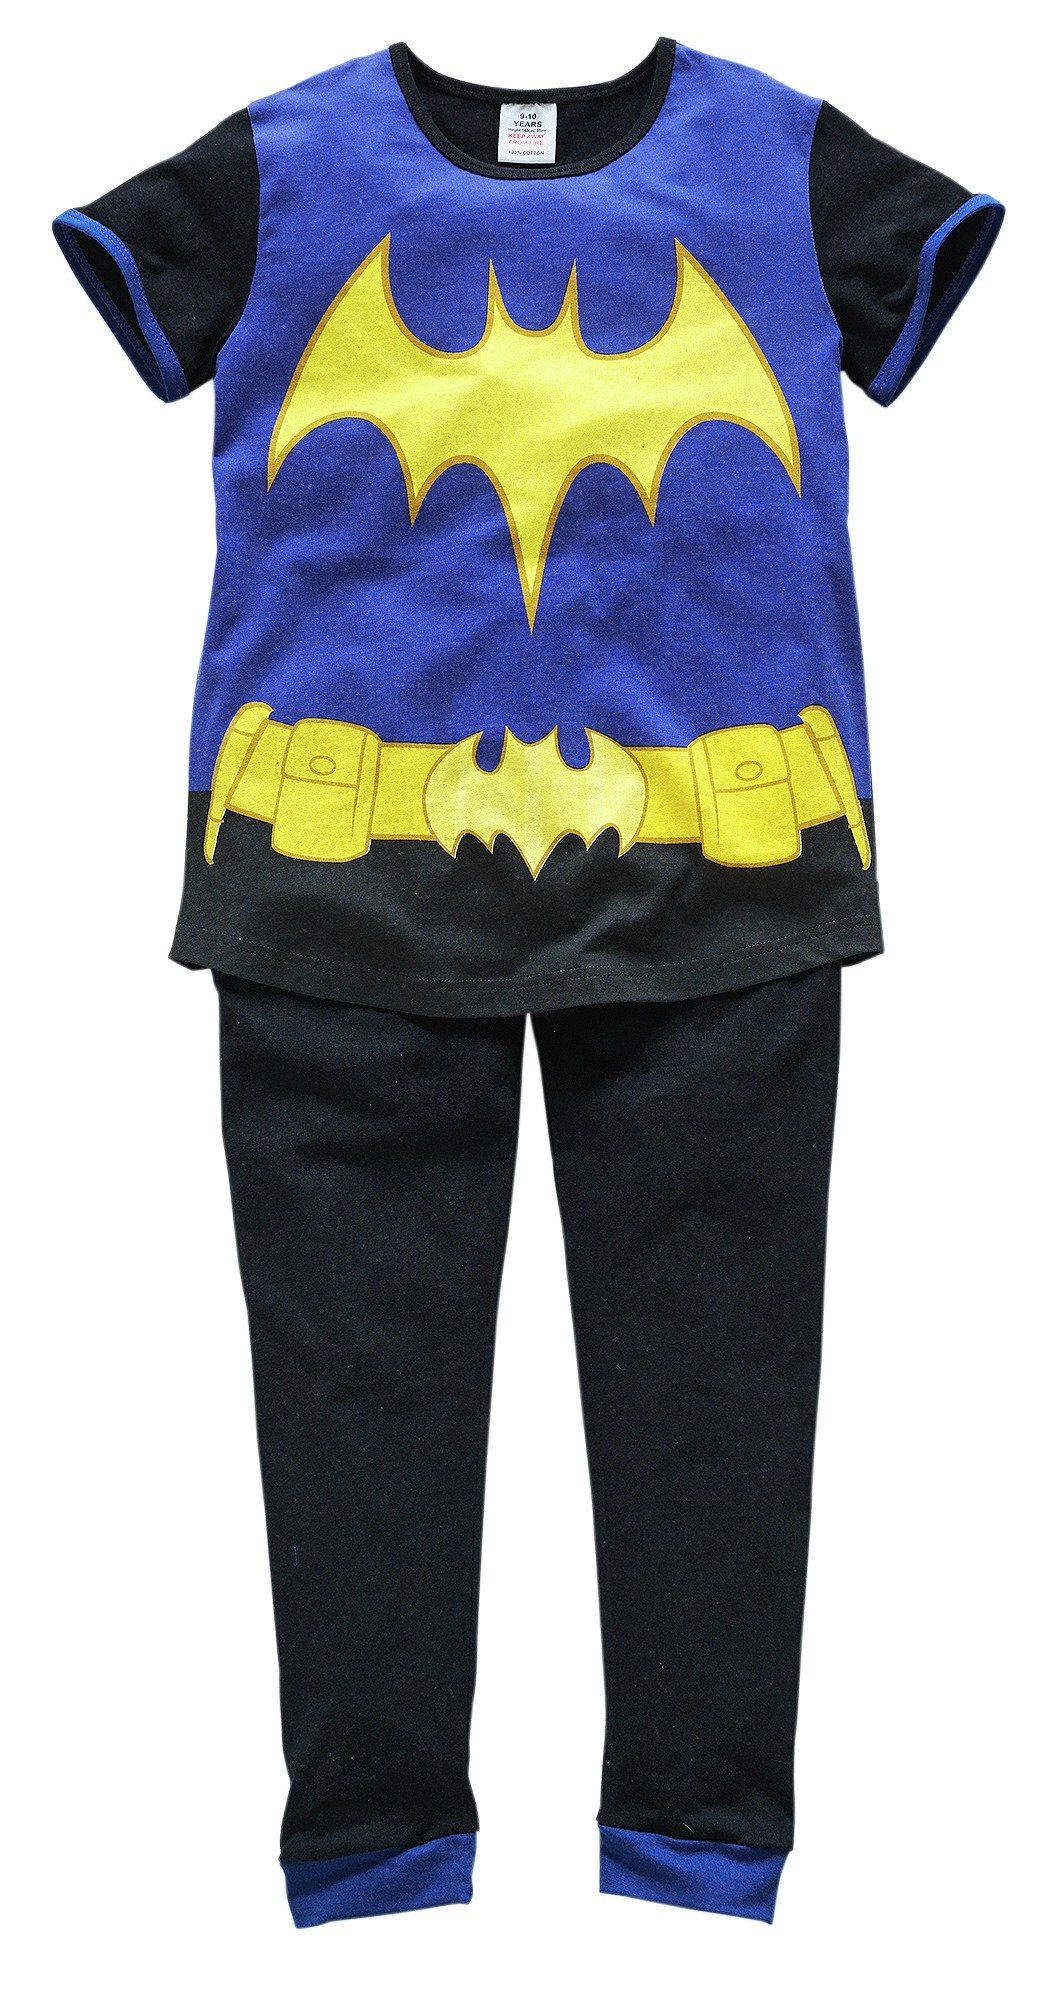 Image of DC Batgirl Cotton Pyjamas - 5-6 Years